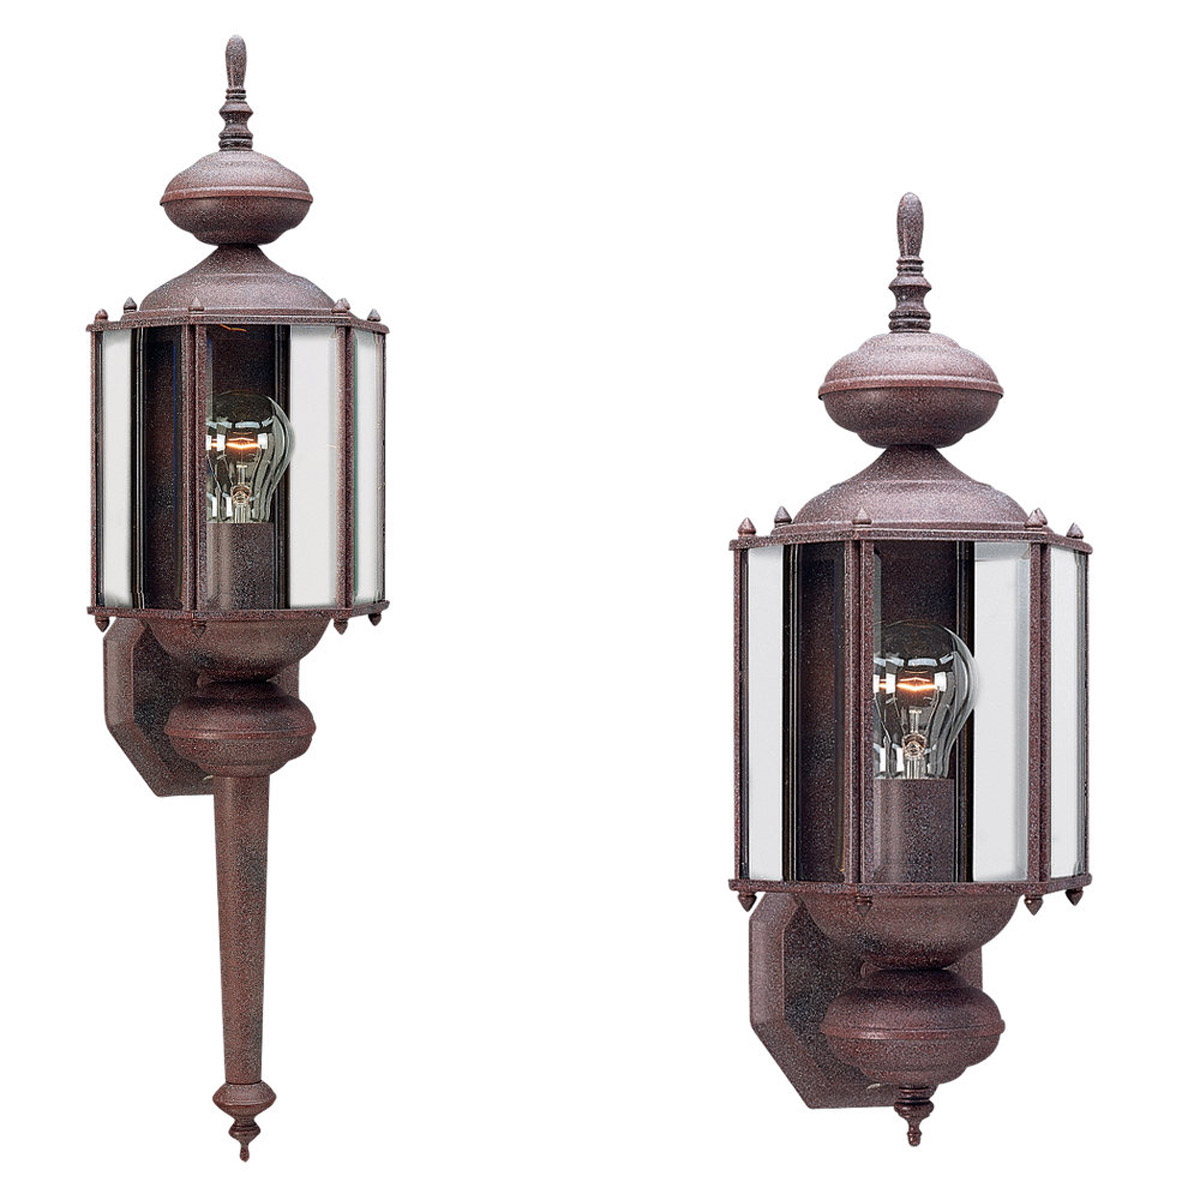 Sea Gull Lighting Classico 1 Light Outdoor Wall Lantern in Sienna 8510-26